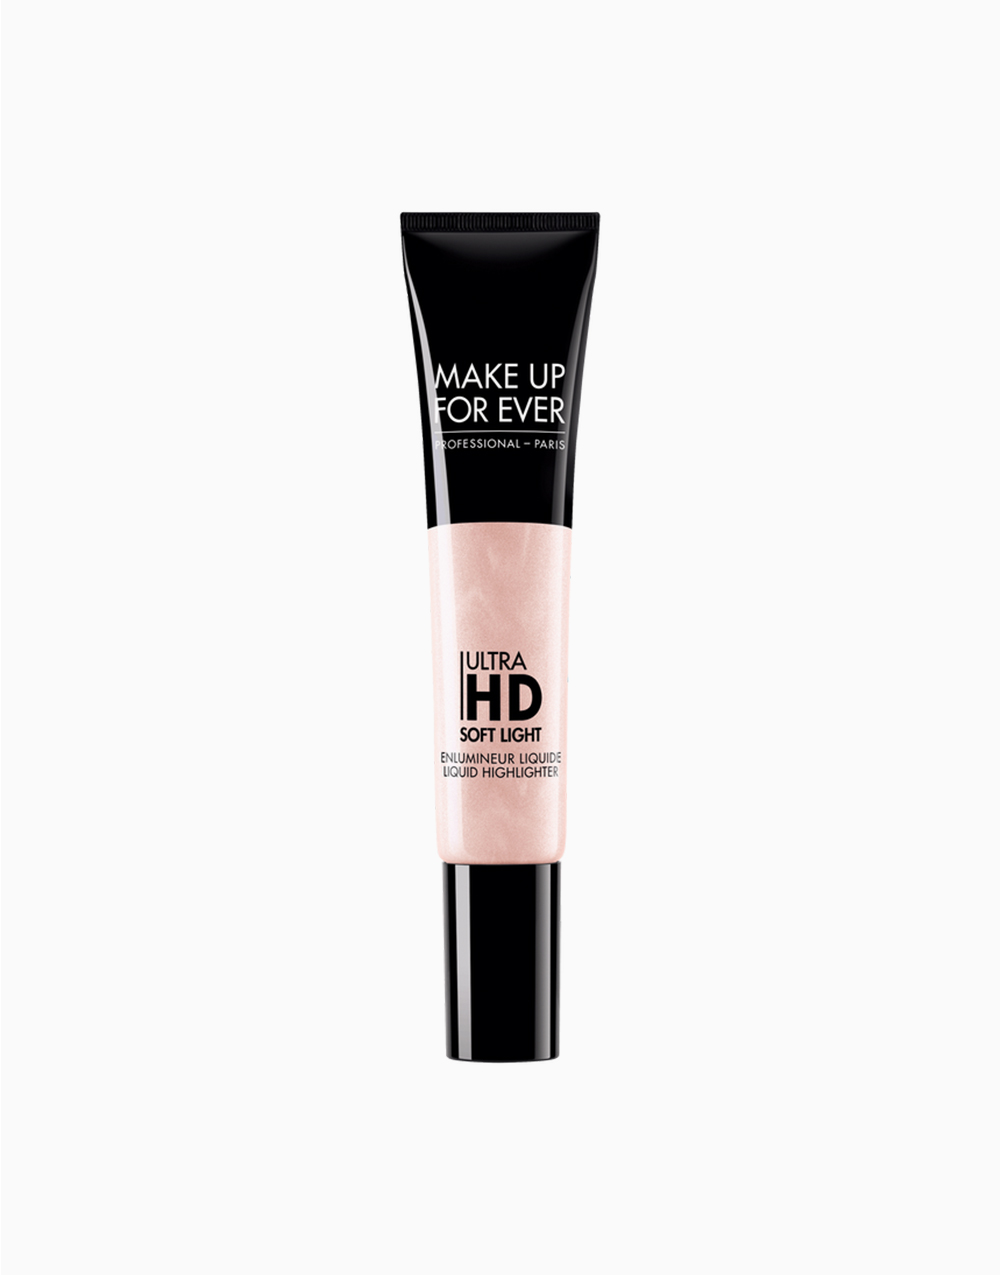 Ultra HD Soft Light (12ml) by Make Up For Ever | #20